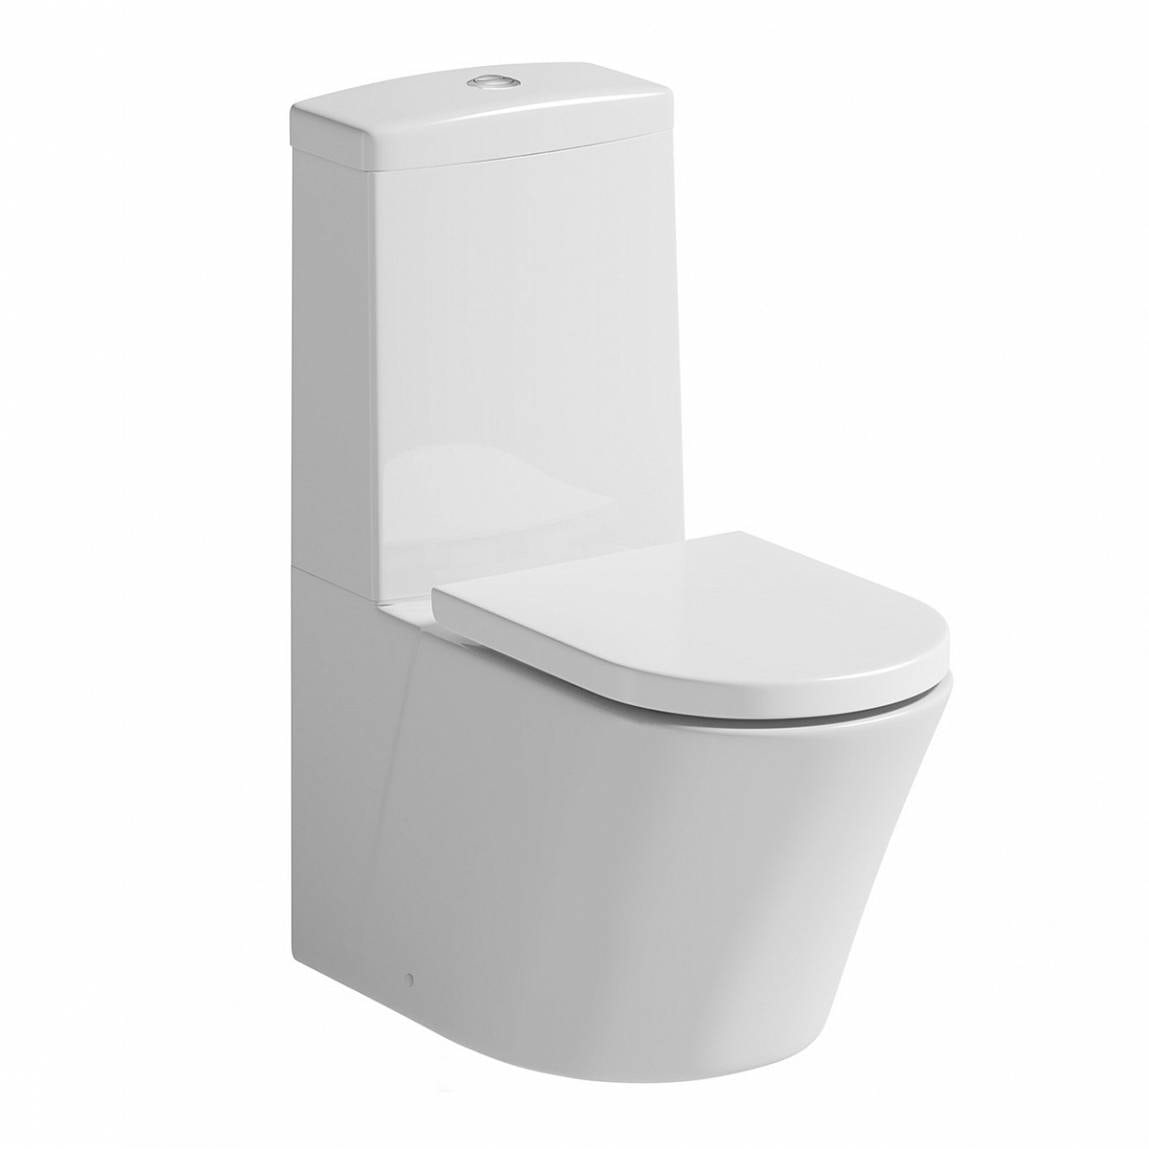 Superb Mode Tate Close Coupled Toilet With Soft Close Seat Gamerscity Chair Design For Home Gamerscityorg